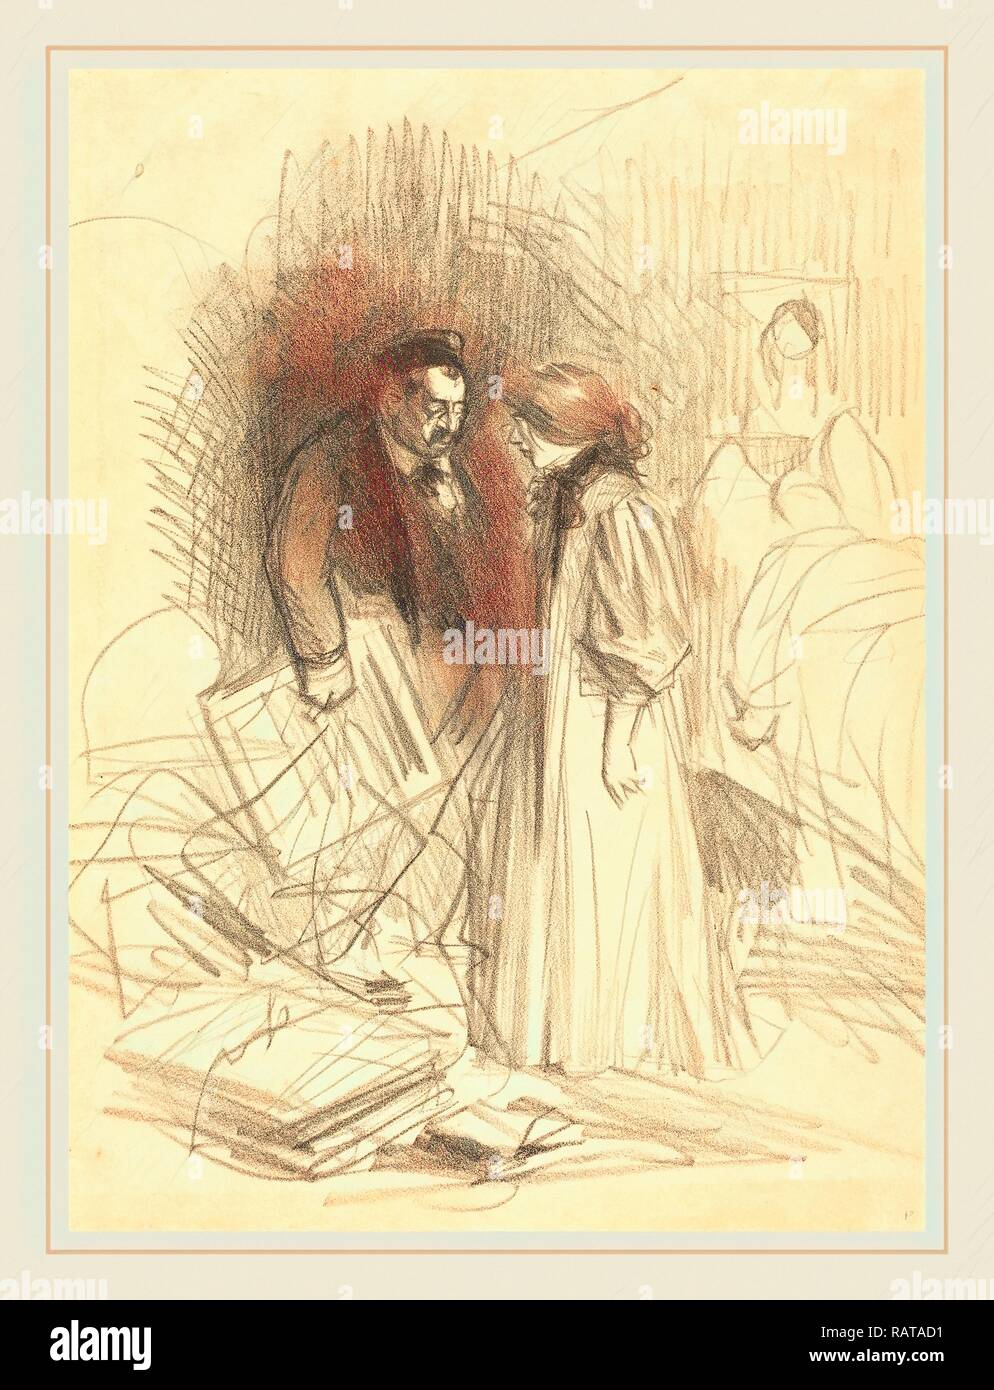 Jean-Louis Forain (French, 1852-1931), 'I don't dare take them down it would hurt him too much.', c. 1892, lithograph reimagined - Stock Image